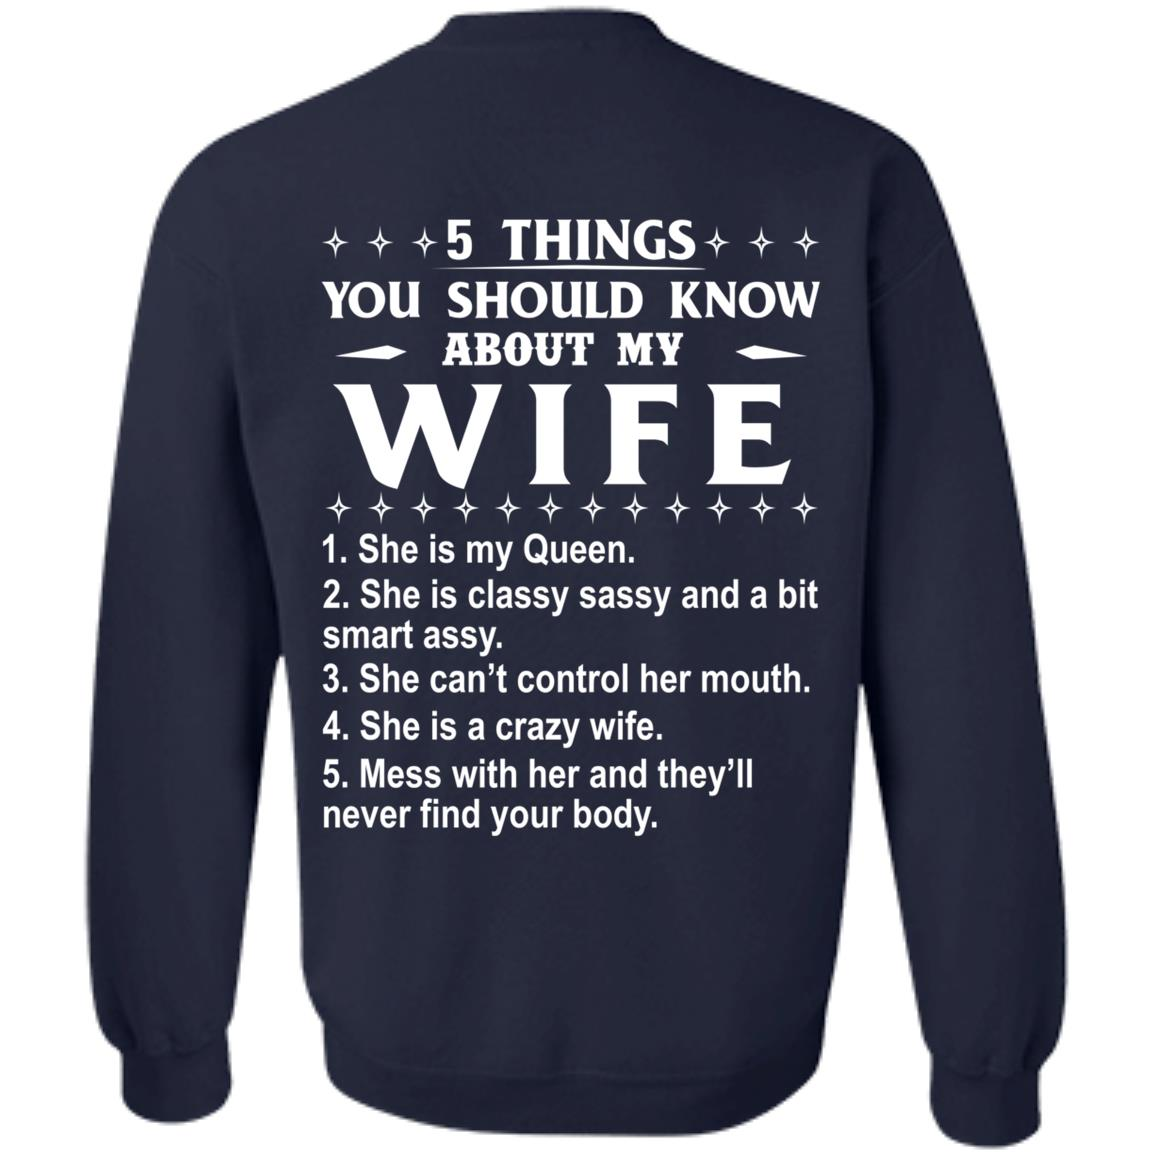 5 Things You Should Know About My wife Shirt & Sweatshirt - image 411